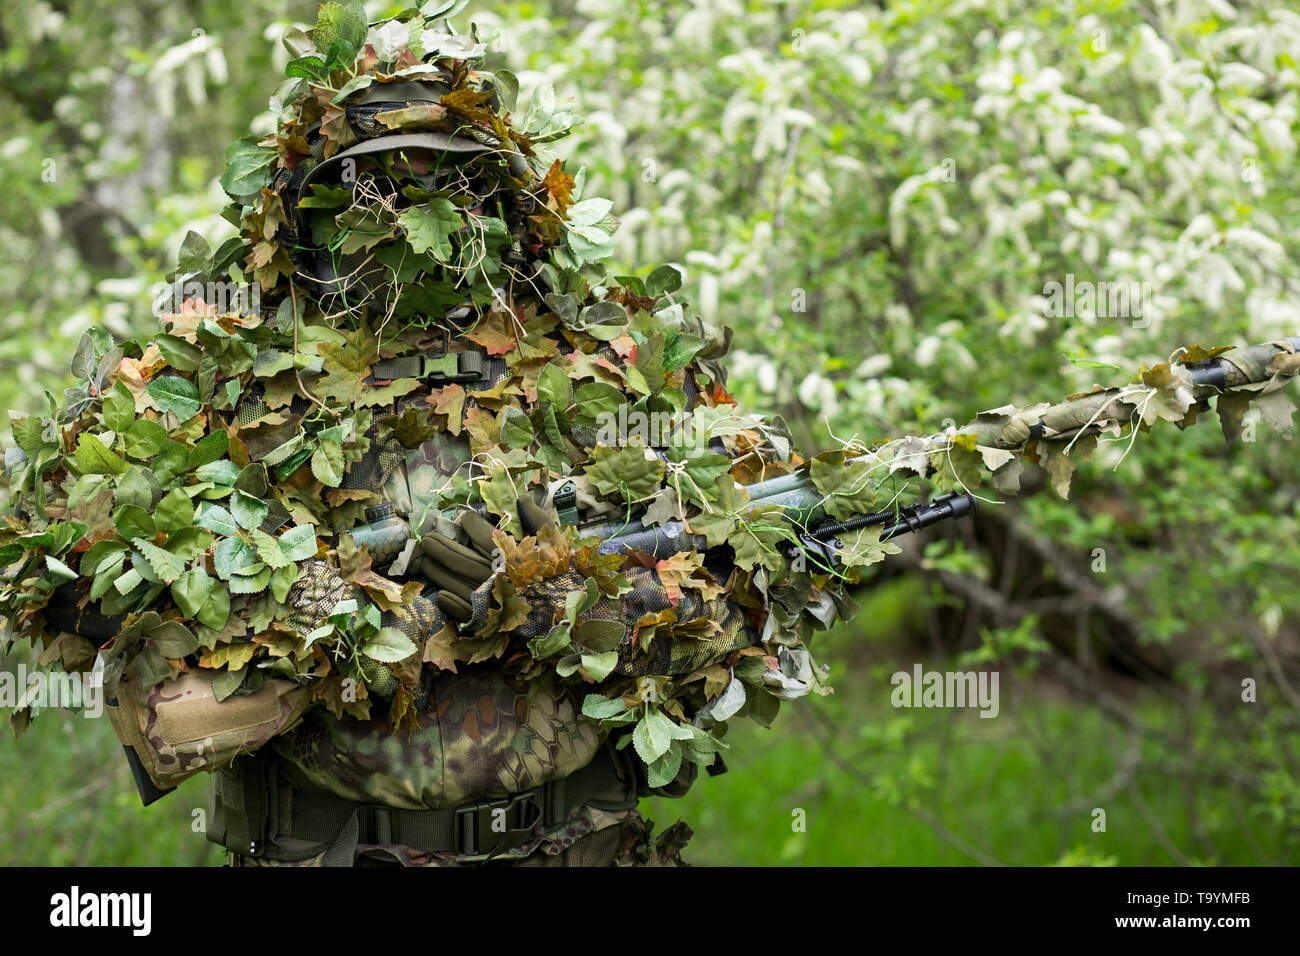 Closeup portrait of a military sniper men in camouflage green army clothes with a gun on his hand on the background of flowering trees - Stock Image